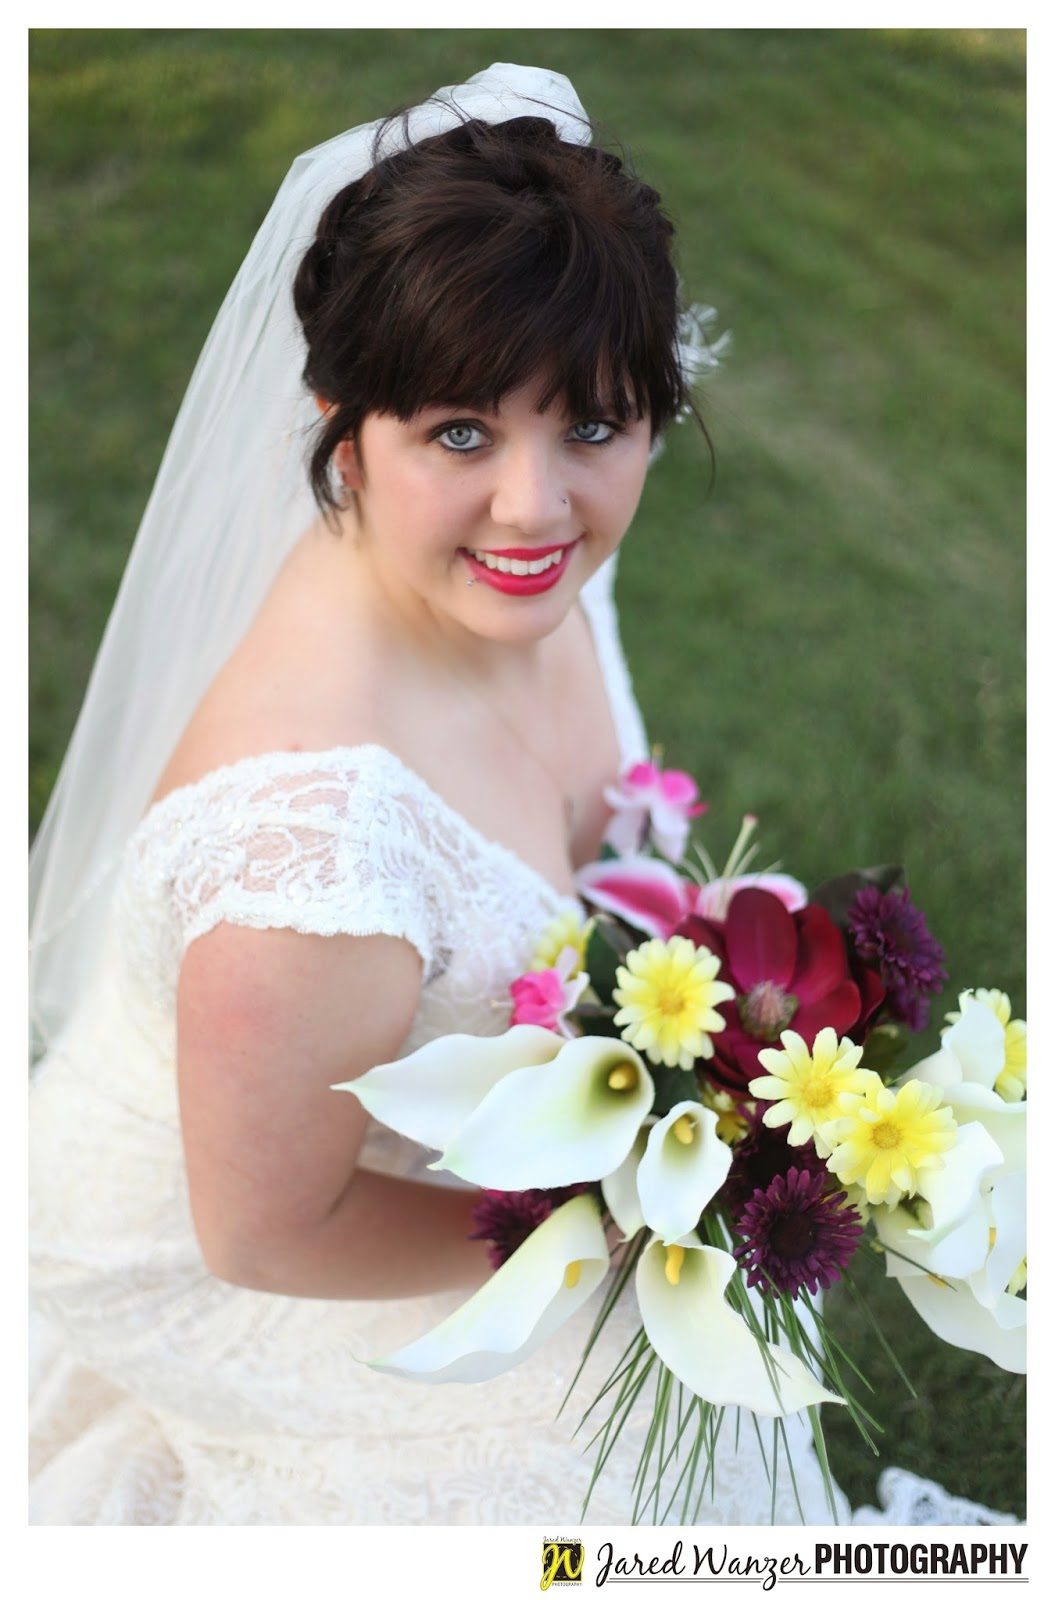 I Loved Having My Wedding At Cross Heart Had Exactly What Envisioned For